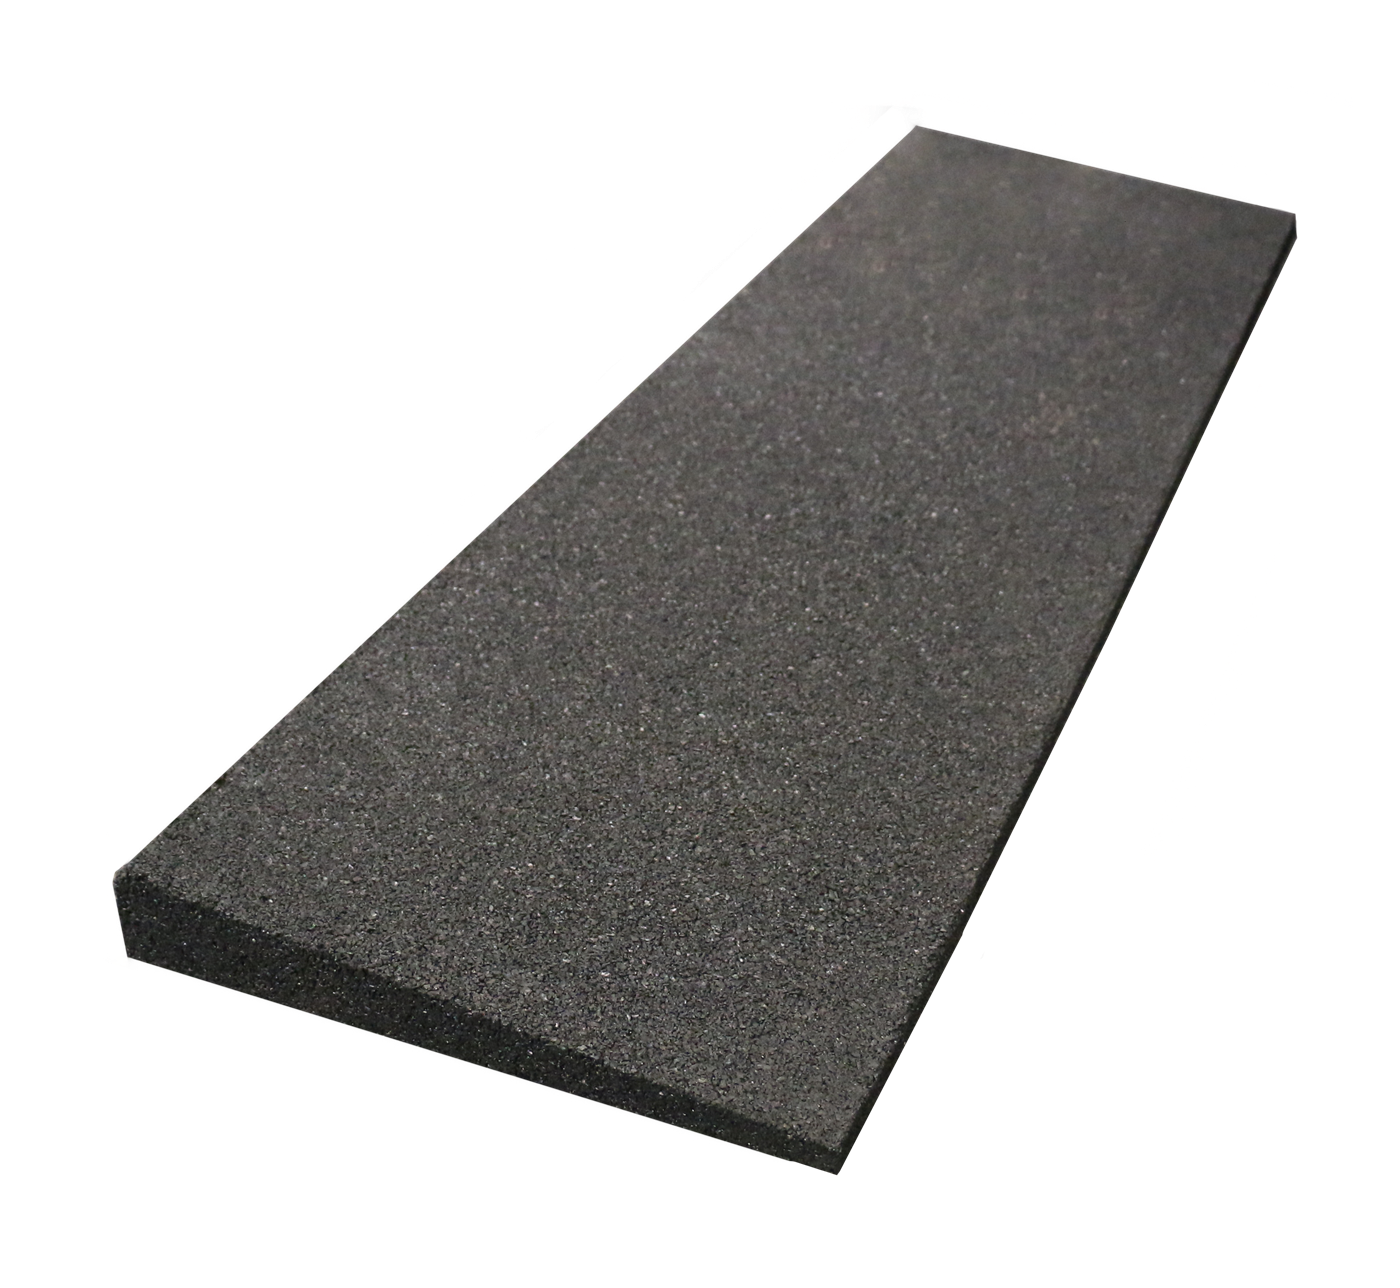 """<p>This 43mm reducer is for use with Modzilla and provides a transition from Modzilla to other flooring products. This product can also be used with PaveSafe products. This product is for non-ADA required applications. Available in Terra Cotta, Forest Freen, Grey, and Black.</p> <ul> <li>1 11/16"""" x 12"""" x 39""""</li> </ul>"""